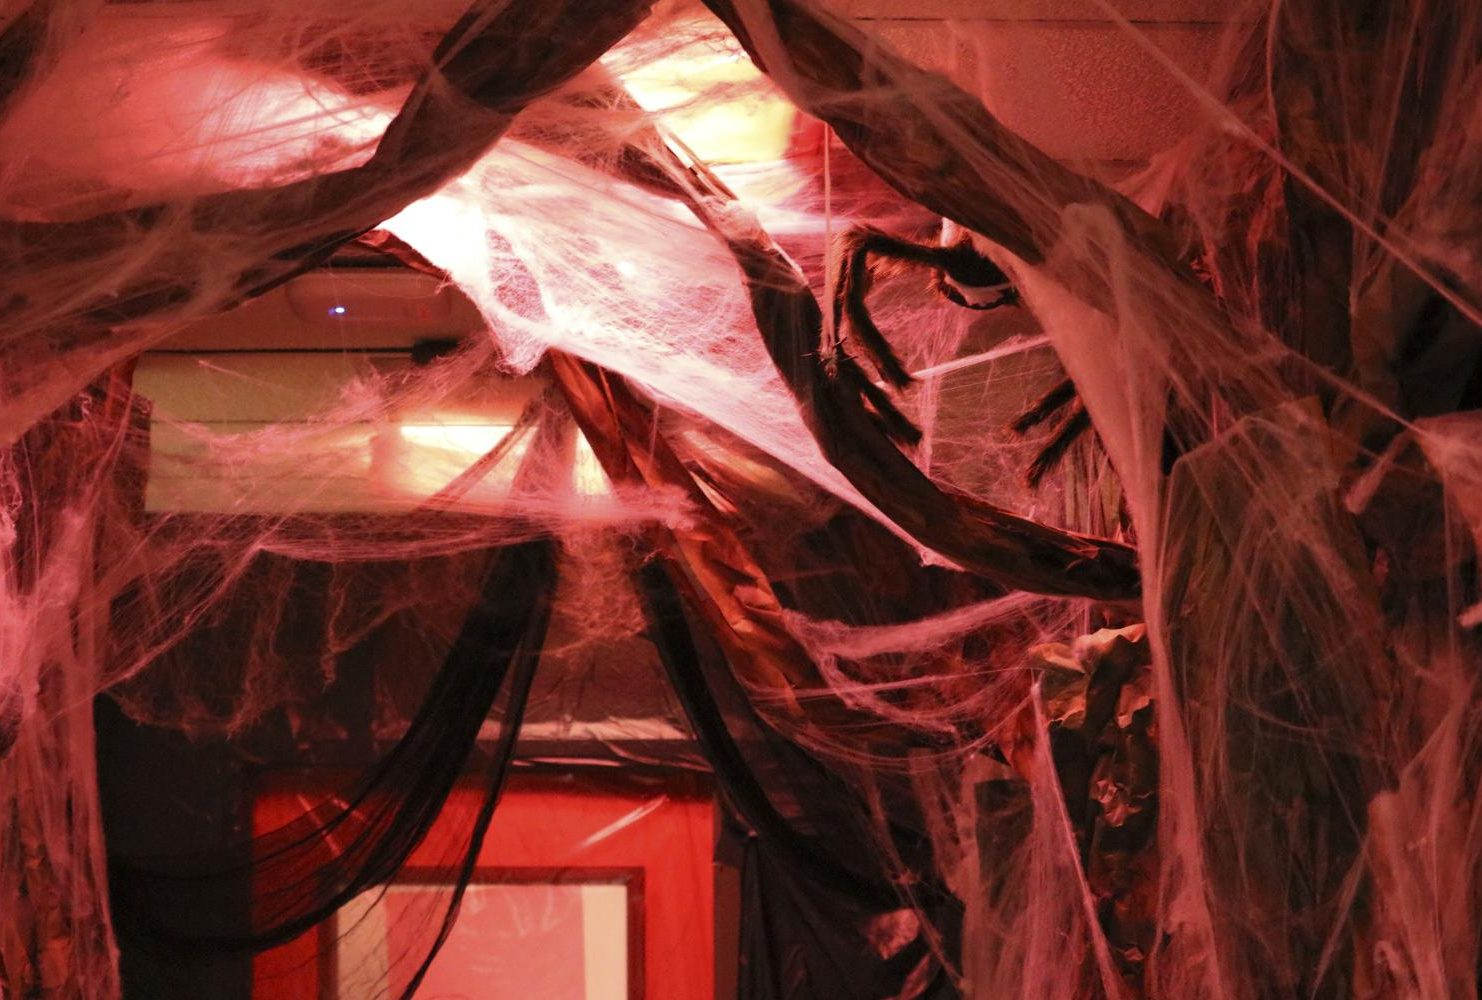 Frightening black tree-like decorations with spider webs fill the hallway of the Veterans Resource Center. (Photo by Gabe Carlos)